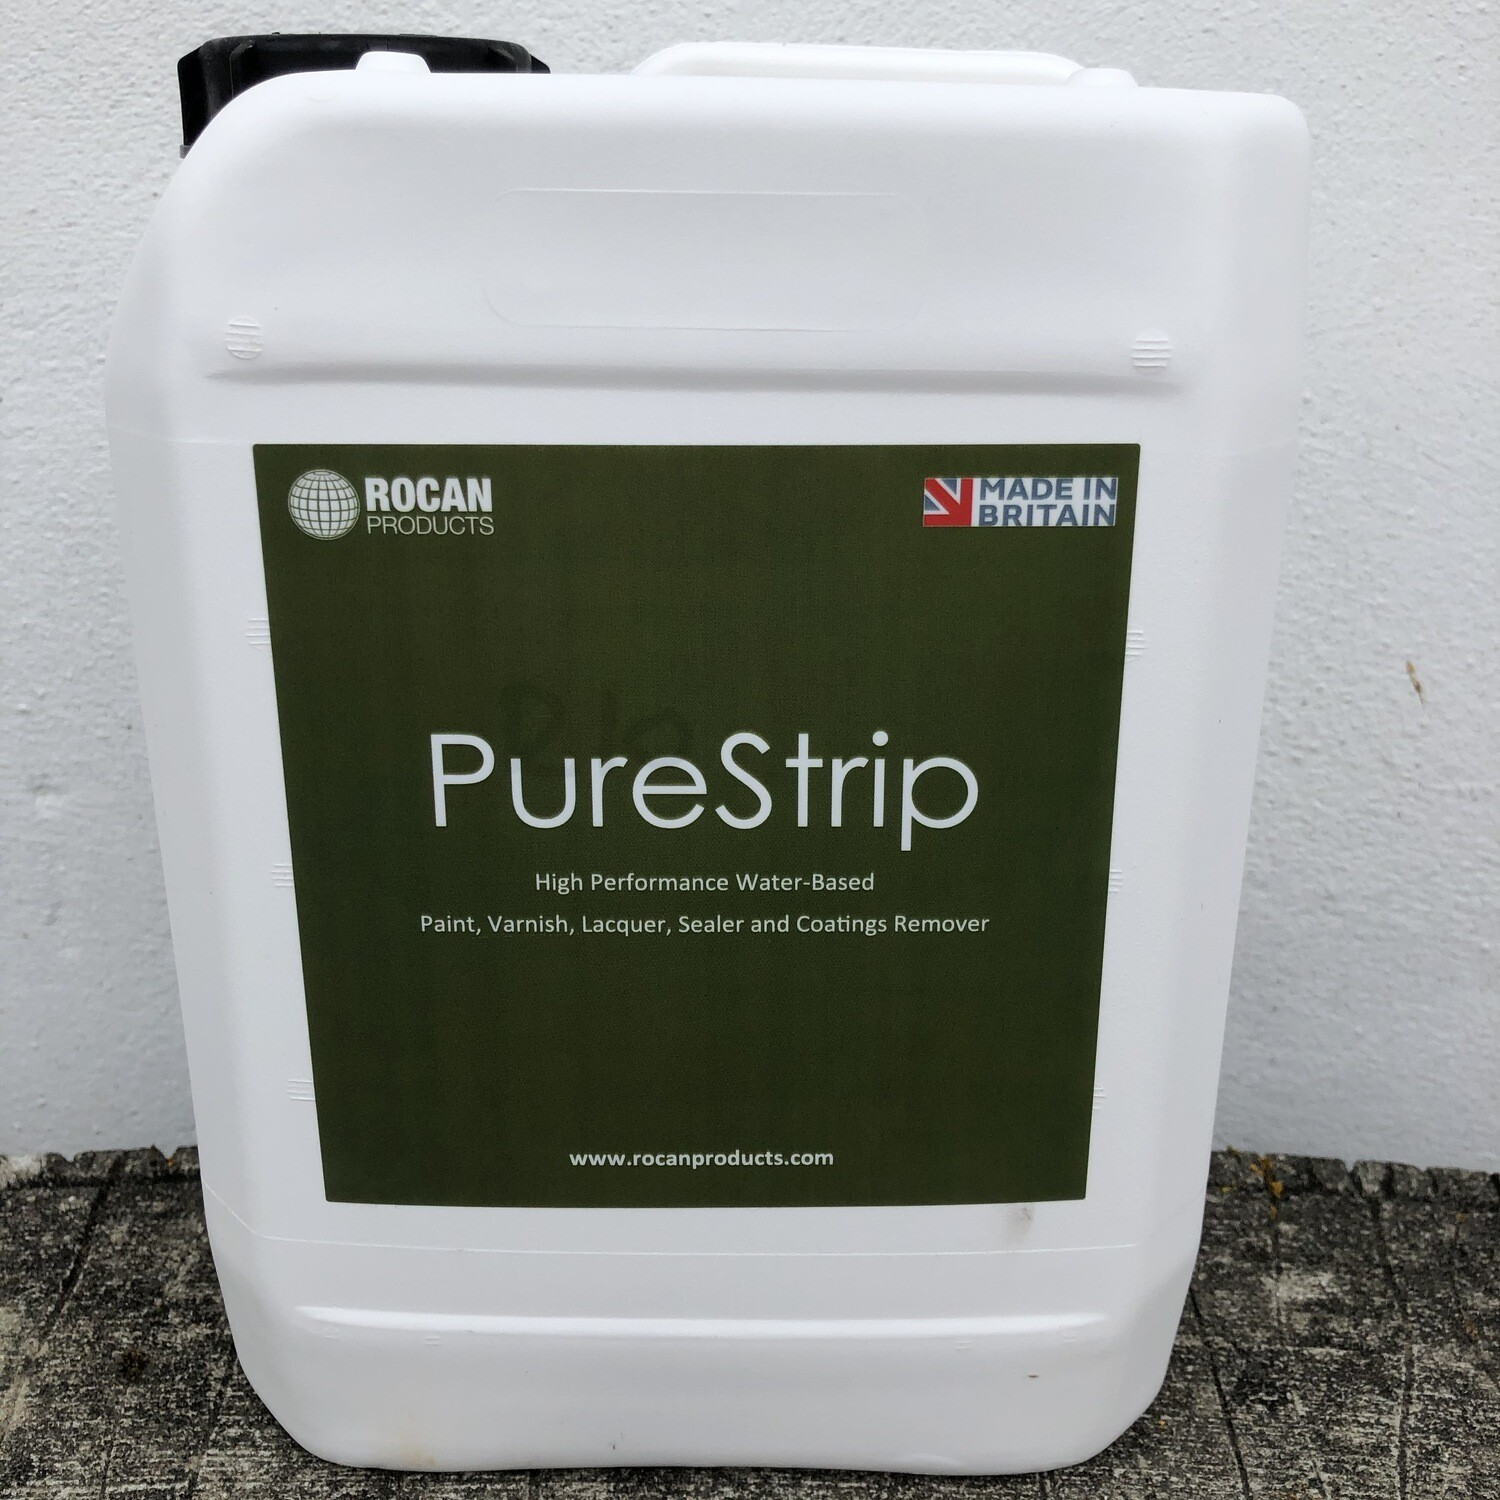 Purestrip Paint and Vanish Remover